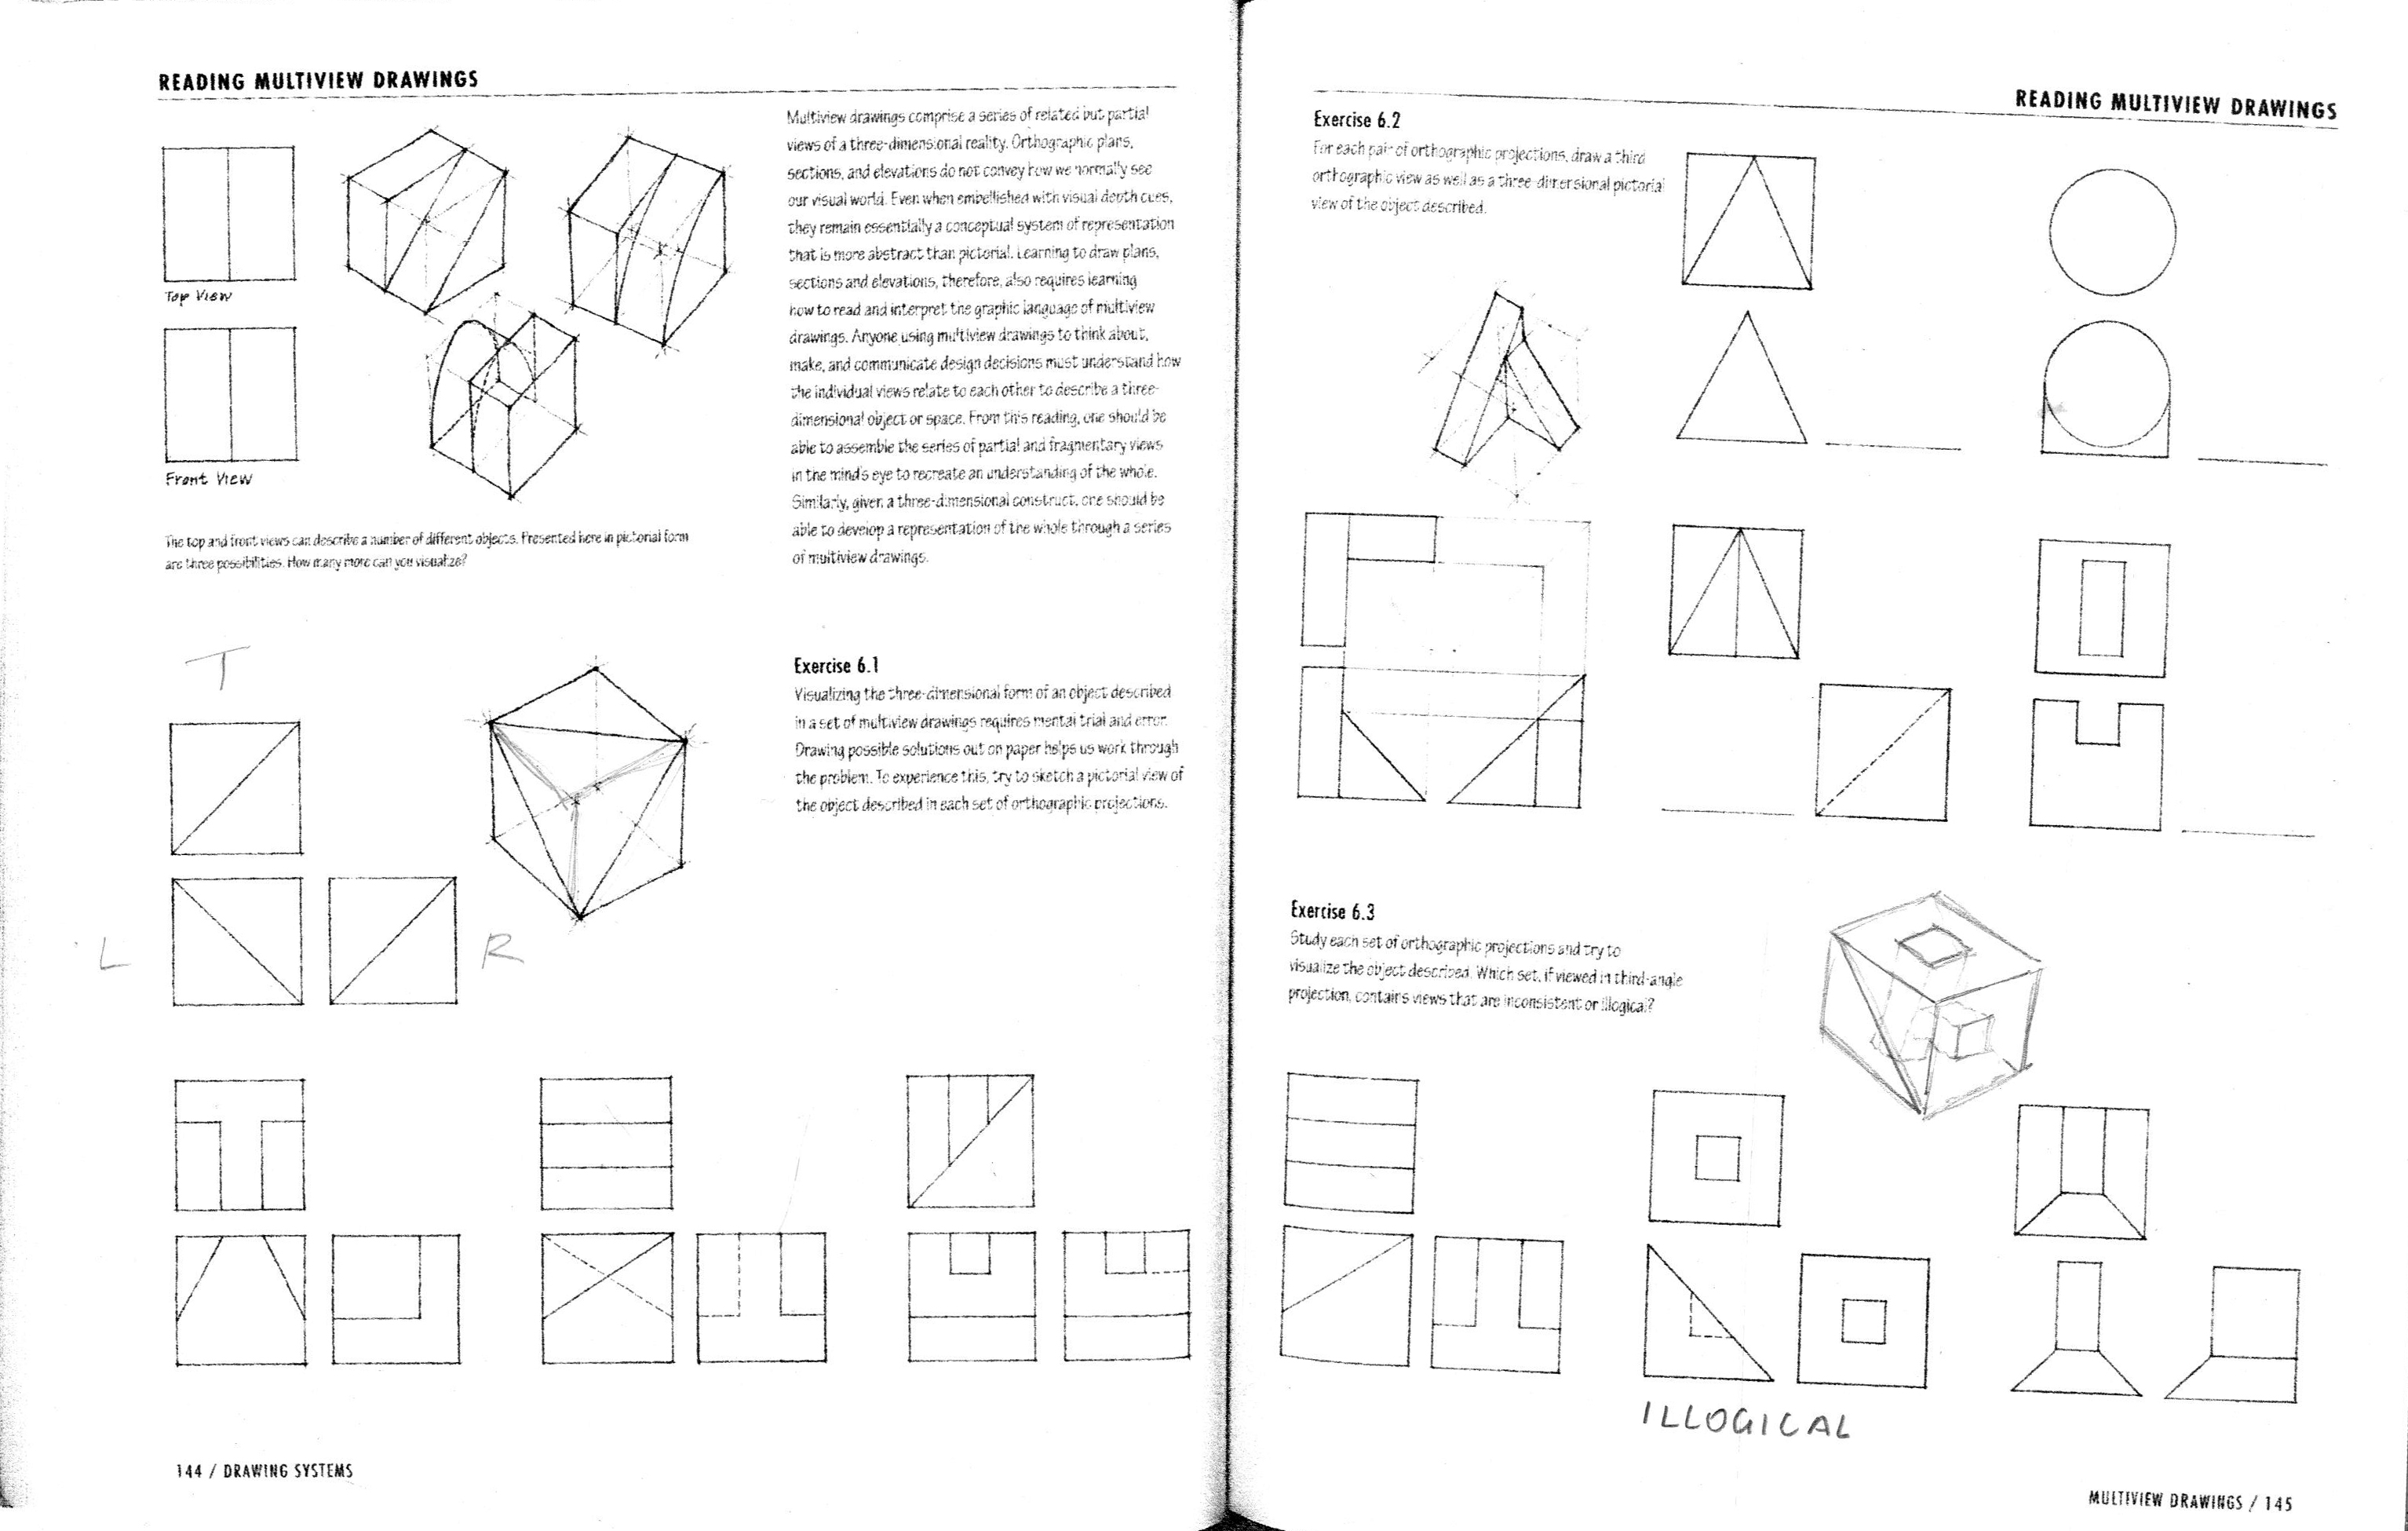 17 Multiview Drawing Worksheet Answers Printable